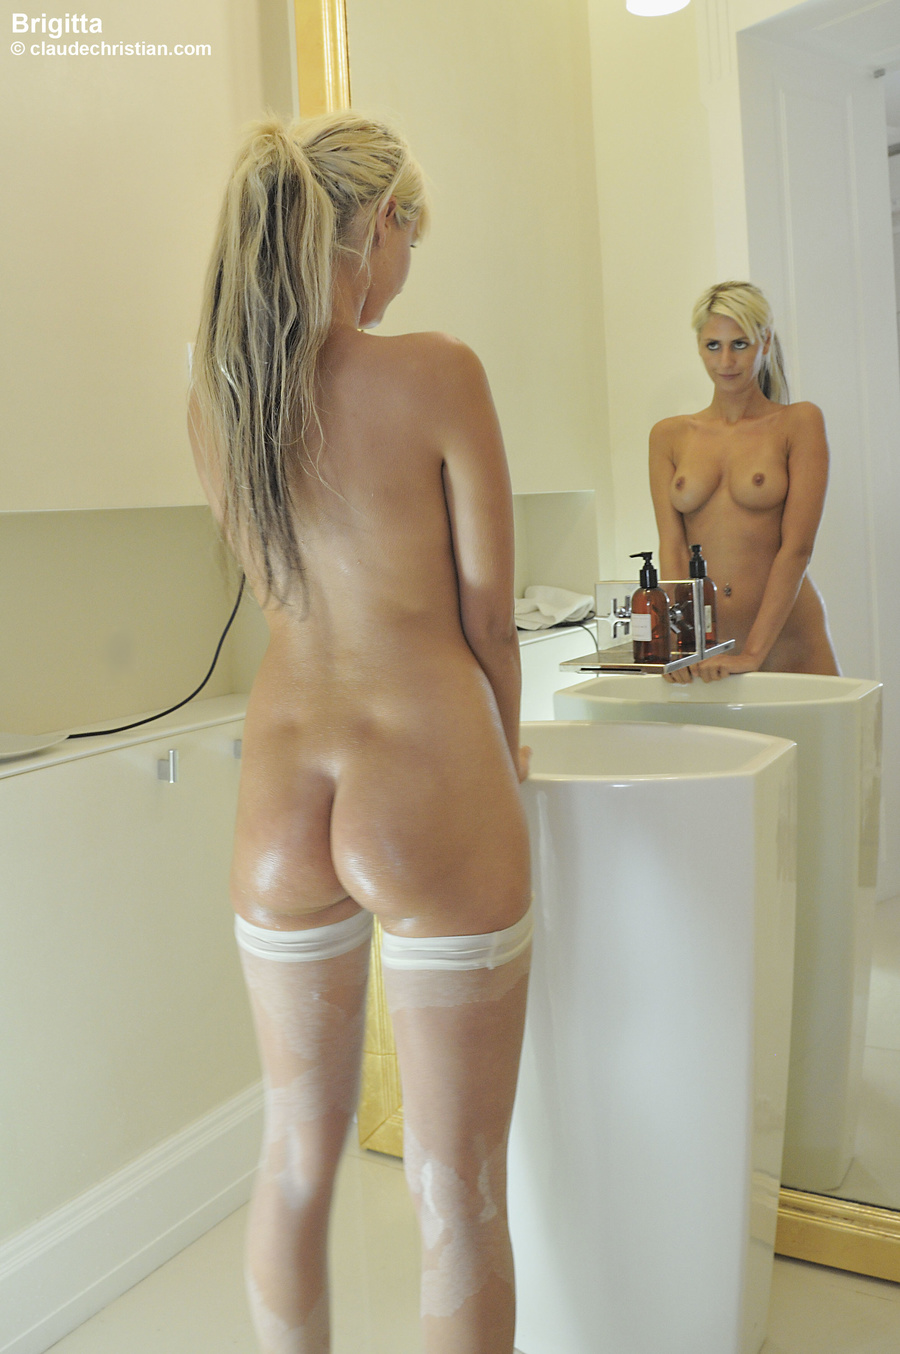 Hot naked teen blonde girls big boobs #4